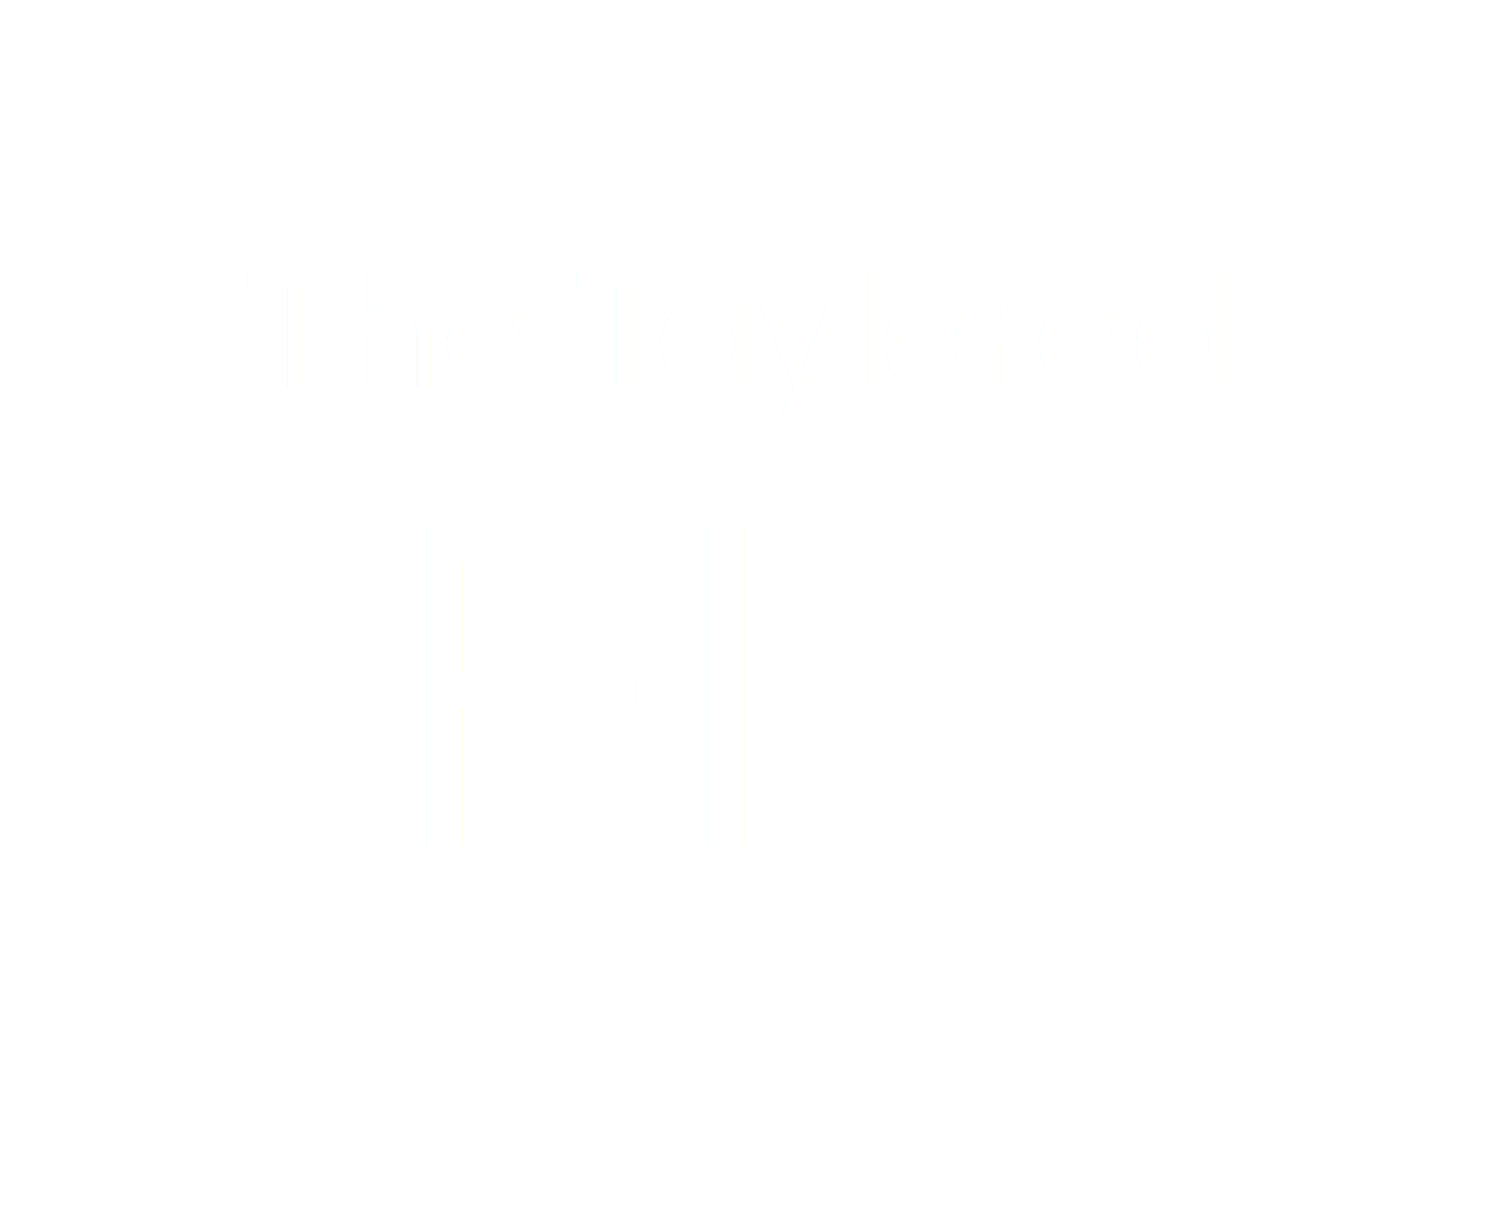 The Taylored FIT